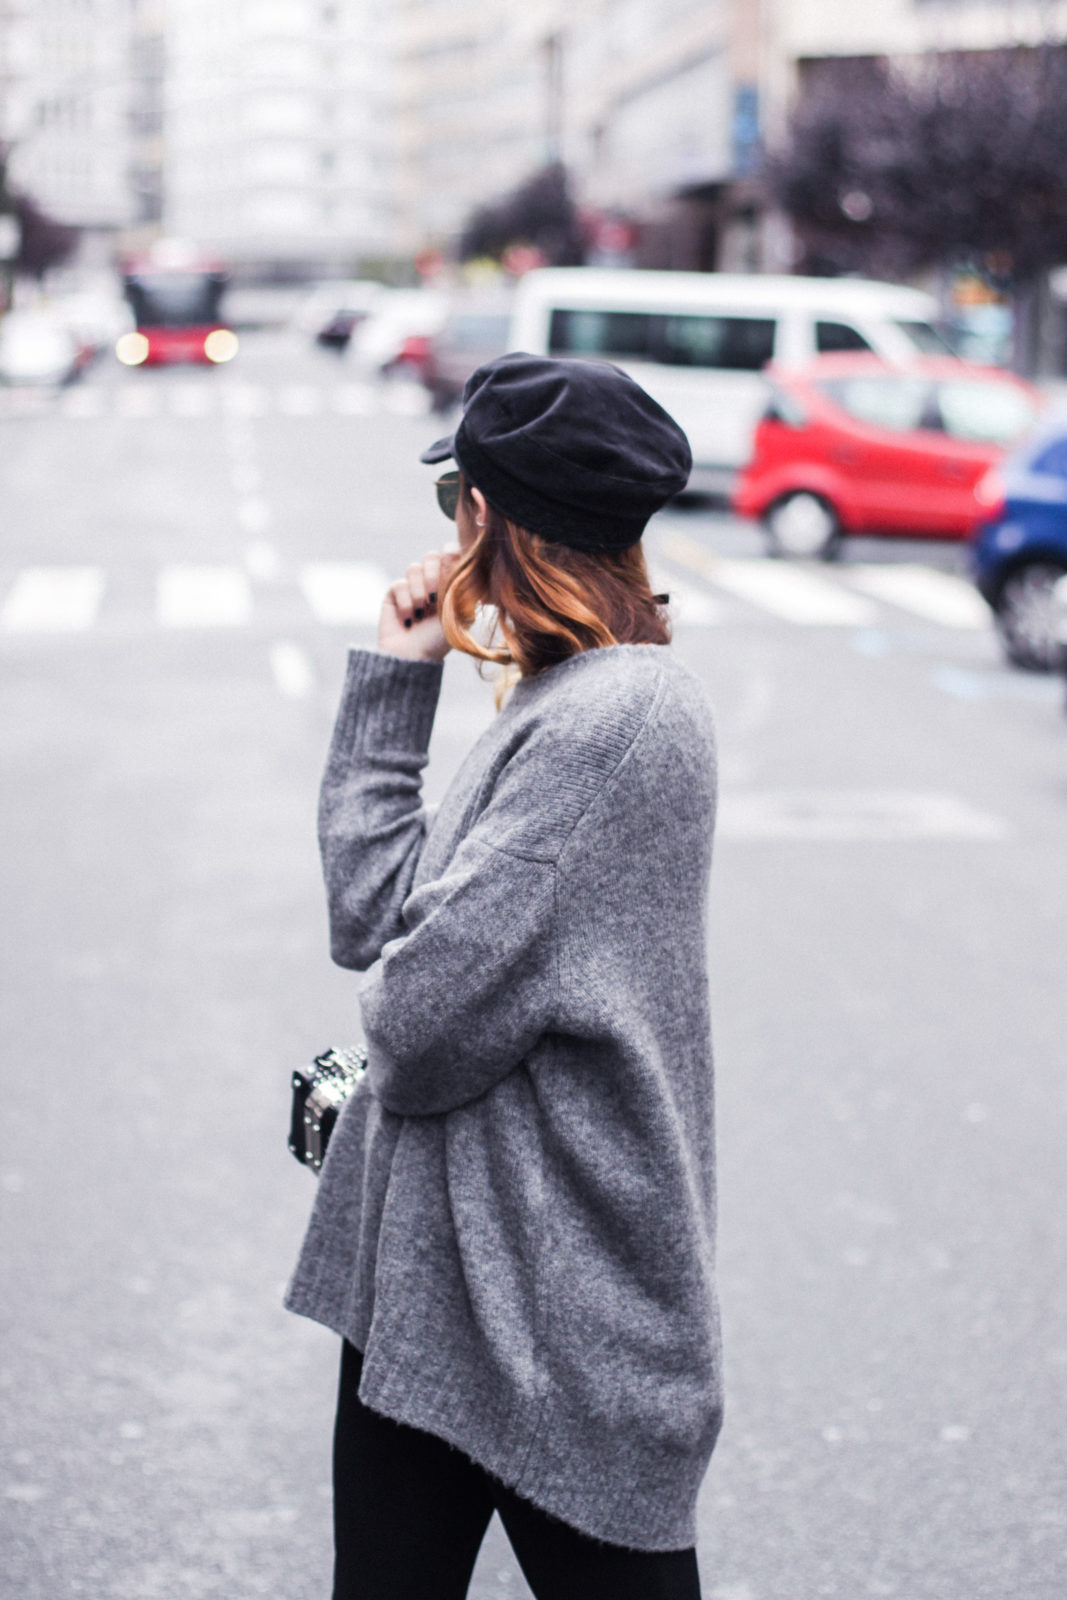 baker_boy_hat_flared_pants_vans_oversize_knit_fall_2016_trends_street_style_outfits_donkeycool-5